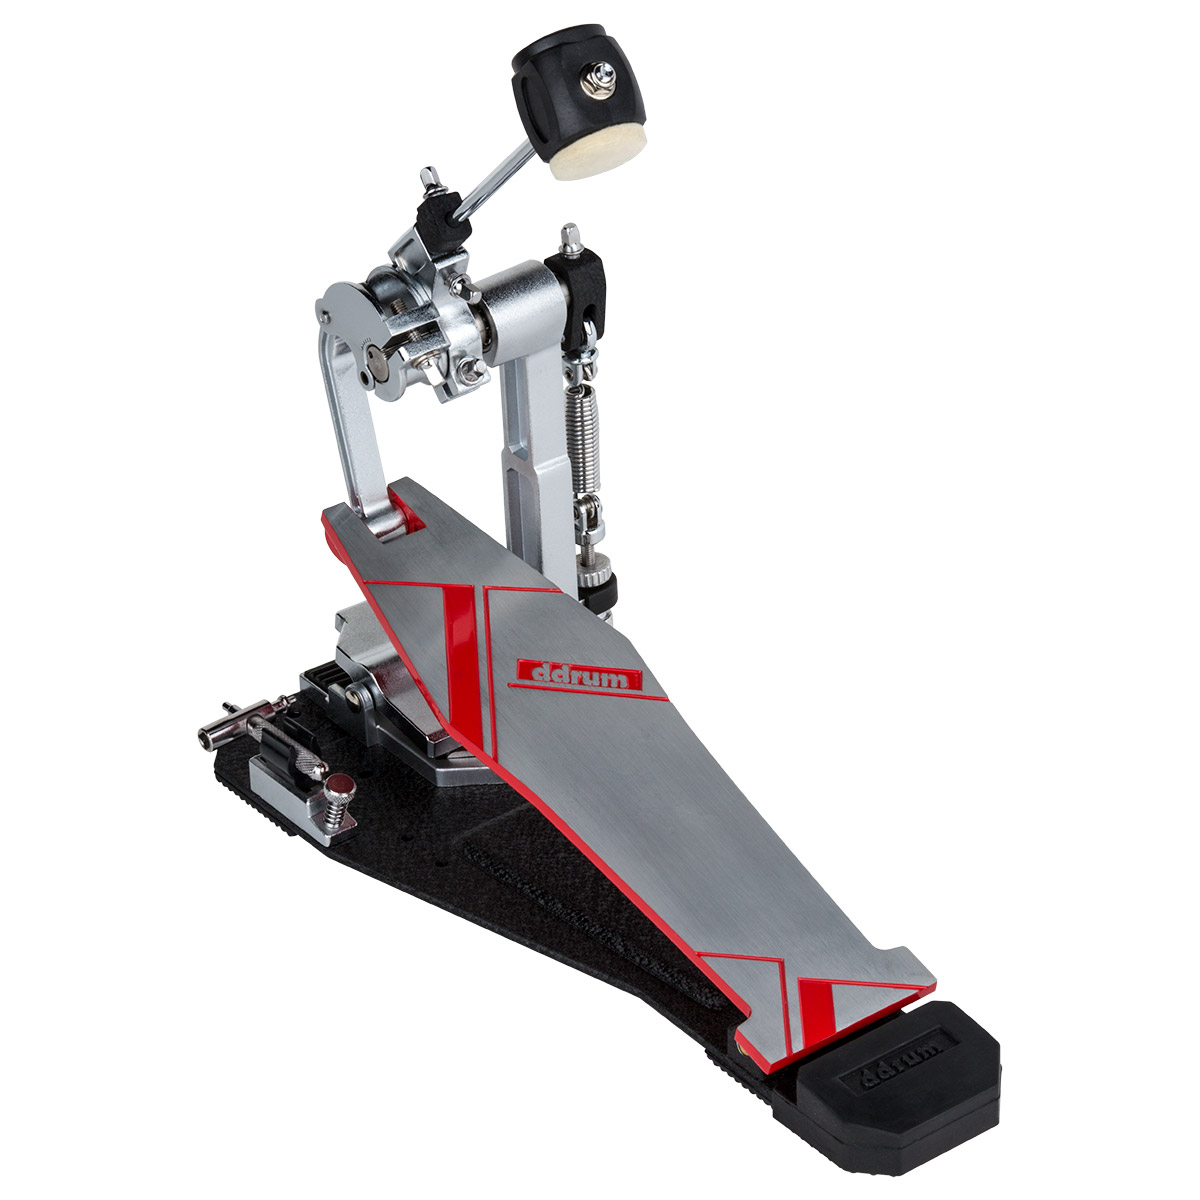 ddrum quicksilver direct drive single drum pedal with adjustable beater distance 814064025127 ebay. Black Bedroom Furniture Sets. Home Design Ideas